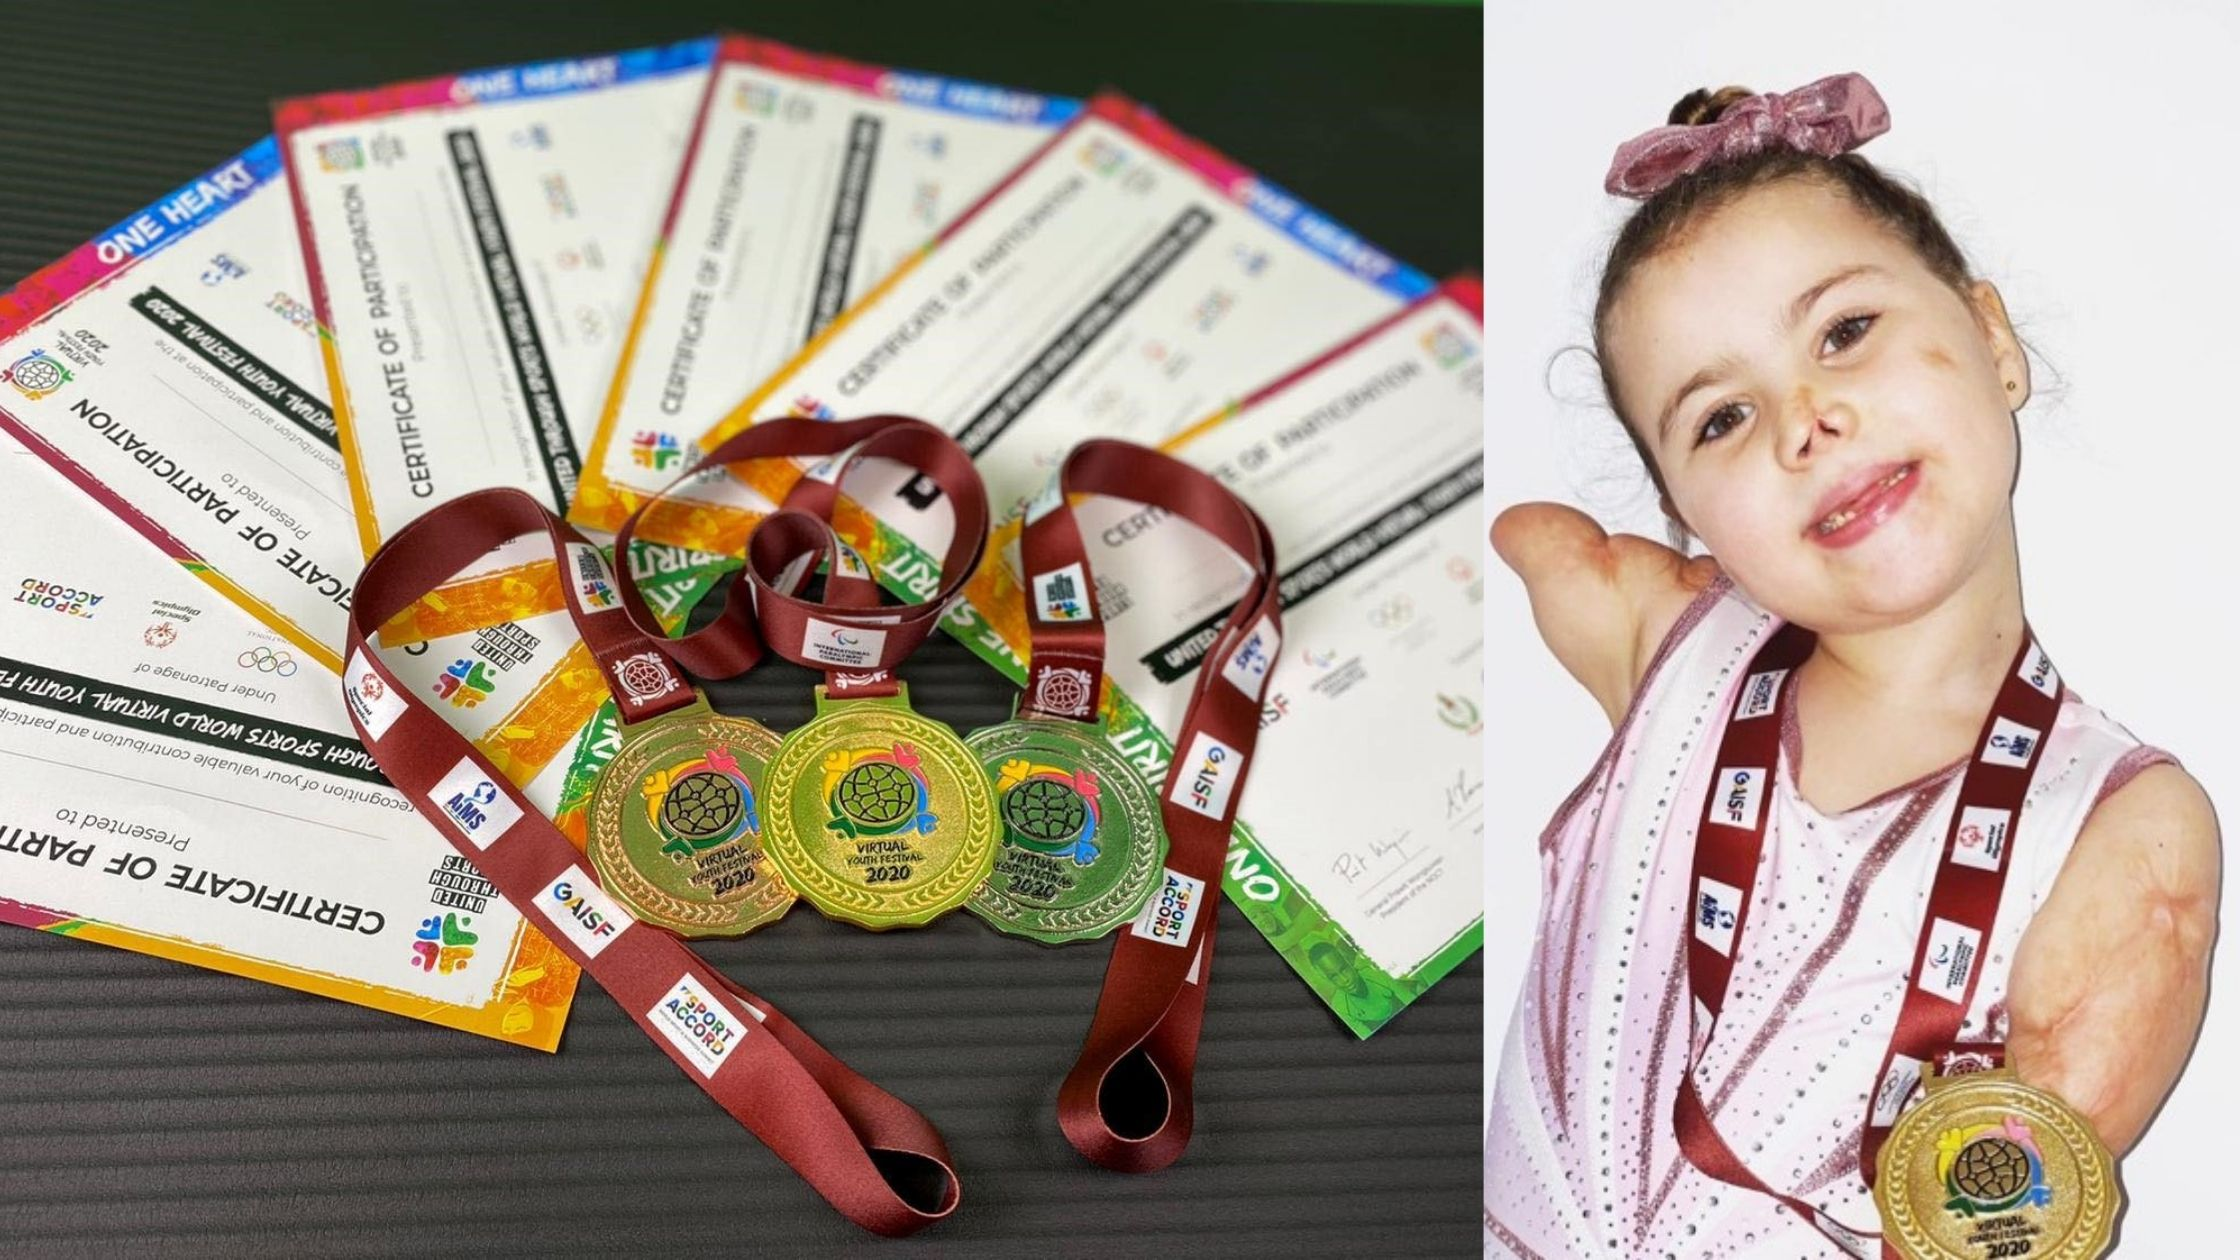 UTS WVYF2020 Gold, Silver & Bronze Medals and Certificates.                                                            UTS WVYF 2020 Gold Medal winner Harmonie-Rose